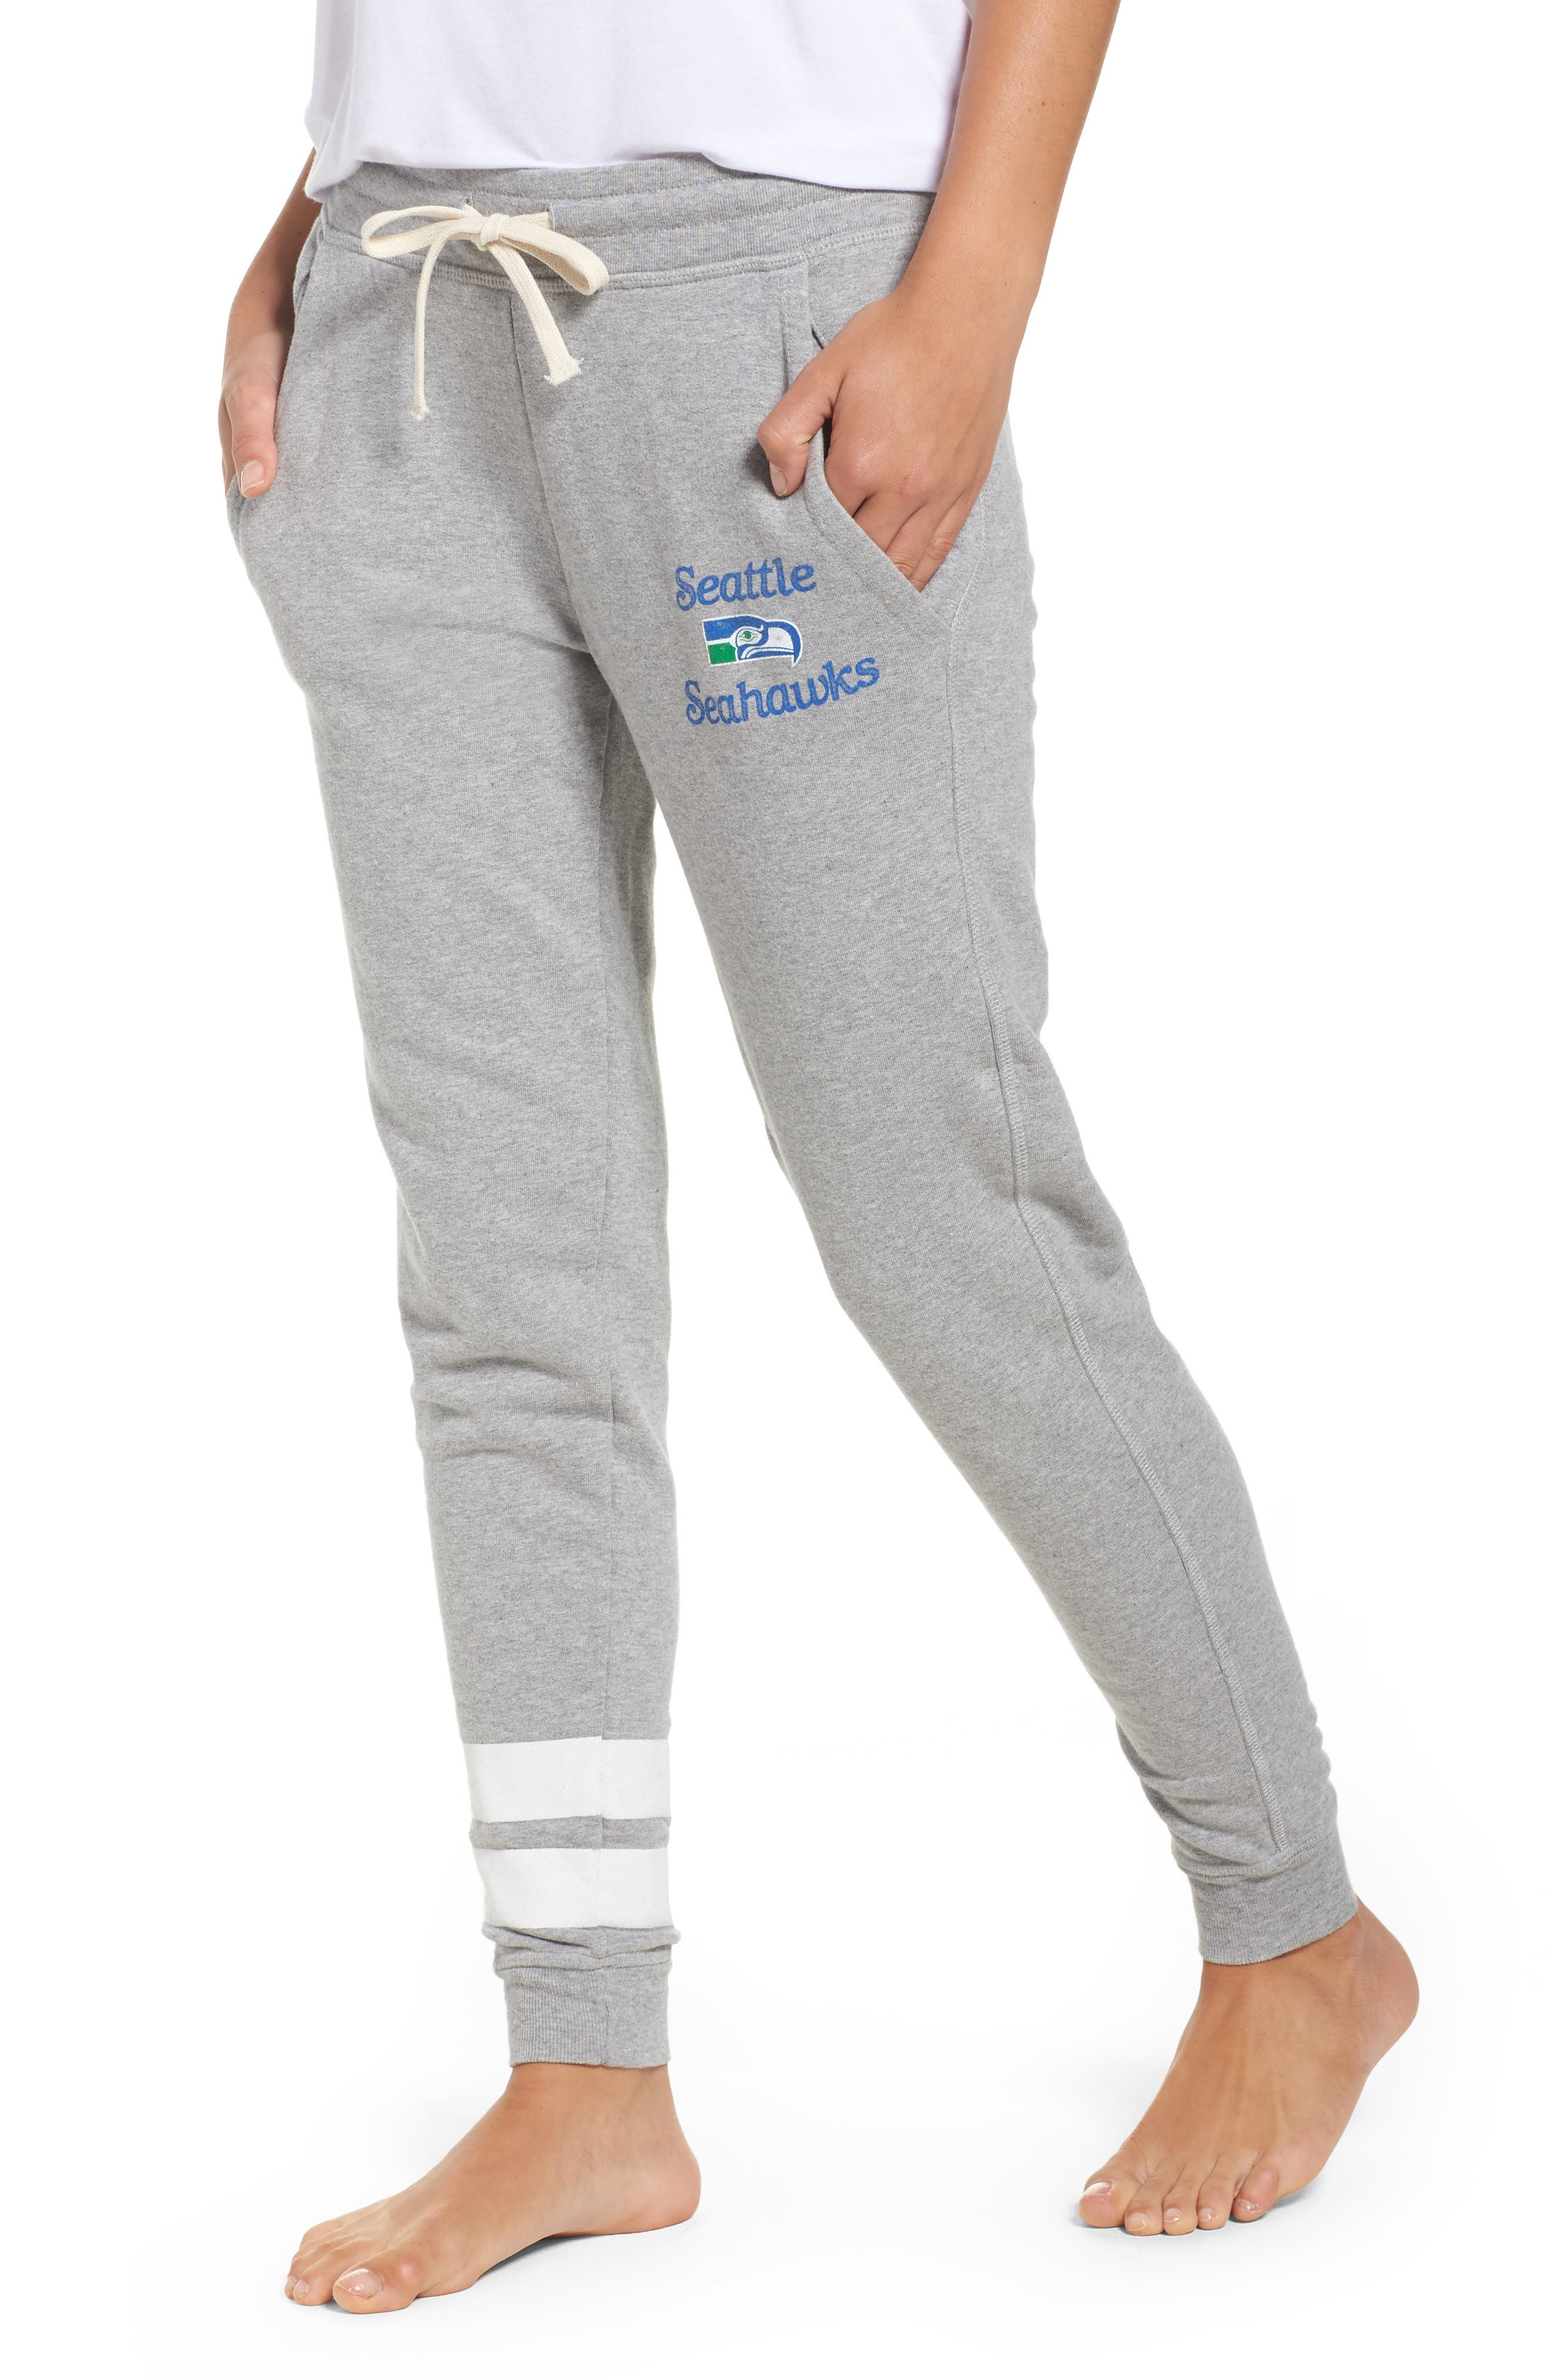 Junk Food NFL Seattle Seahawks Sunday Sweatpants